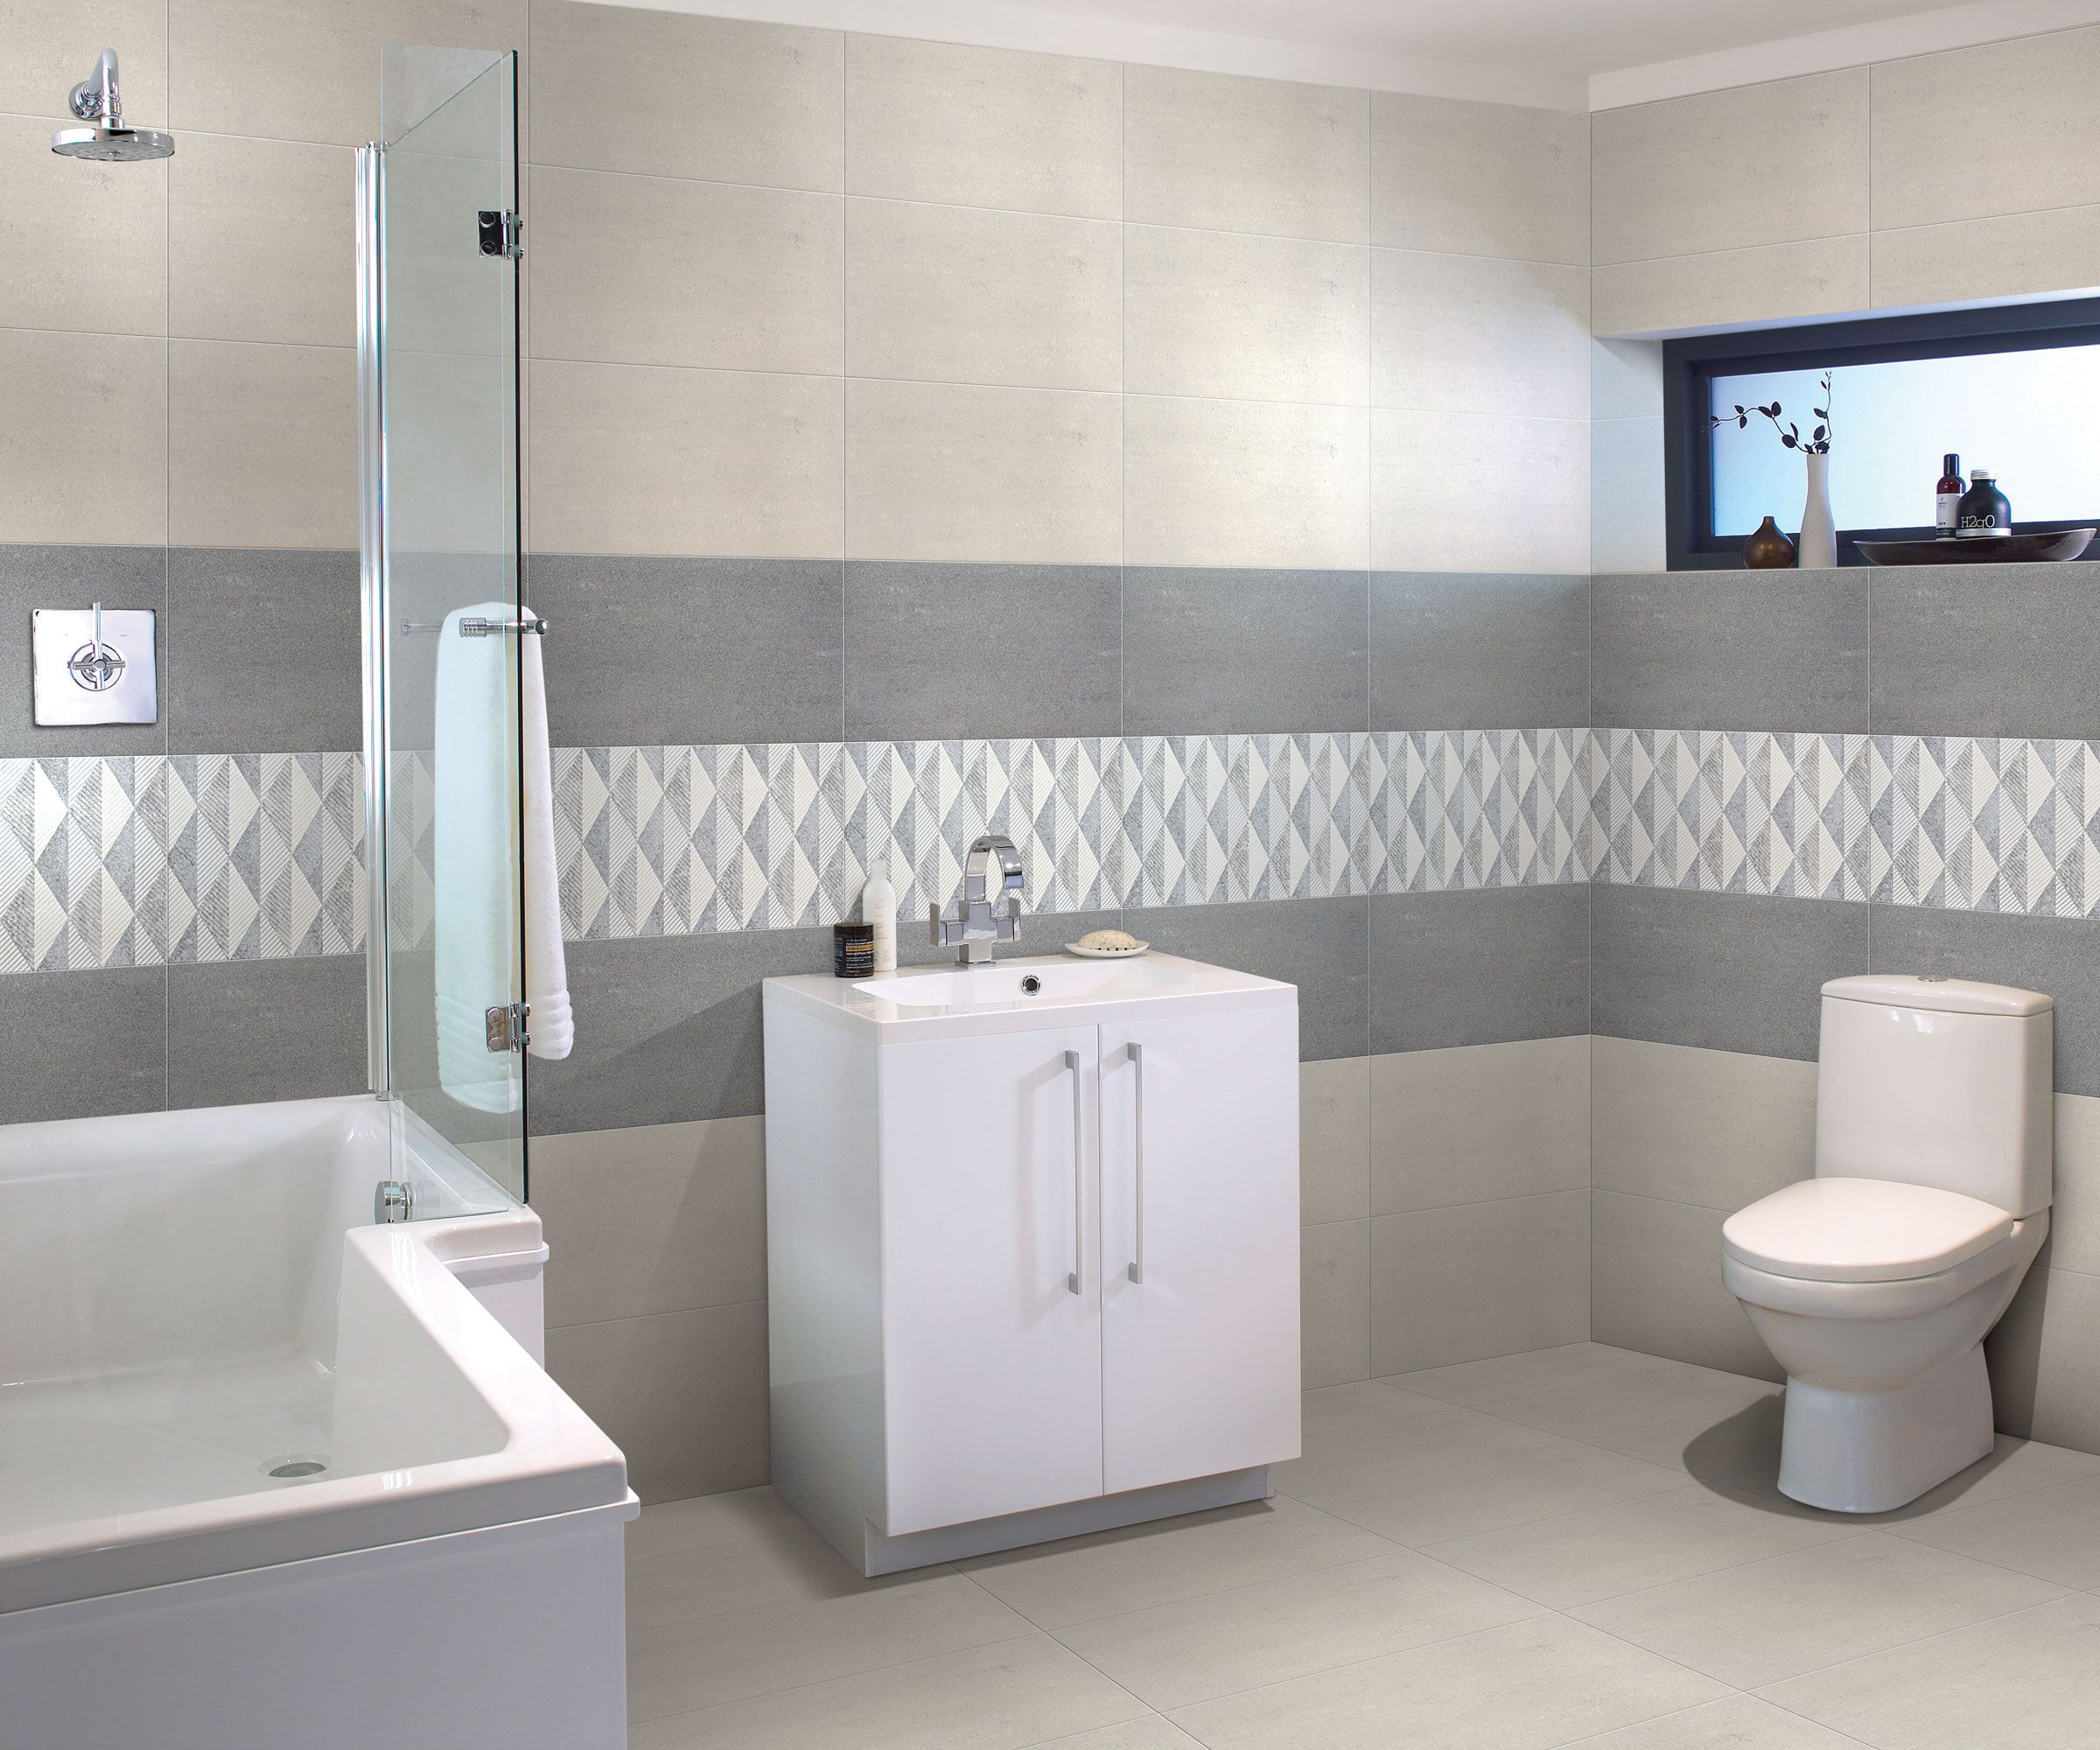 Images Of Small Bathroom Designs In India: Buy Designer Floor, Wall #Tiles For #Bathroom, Bedroom